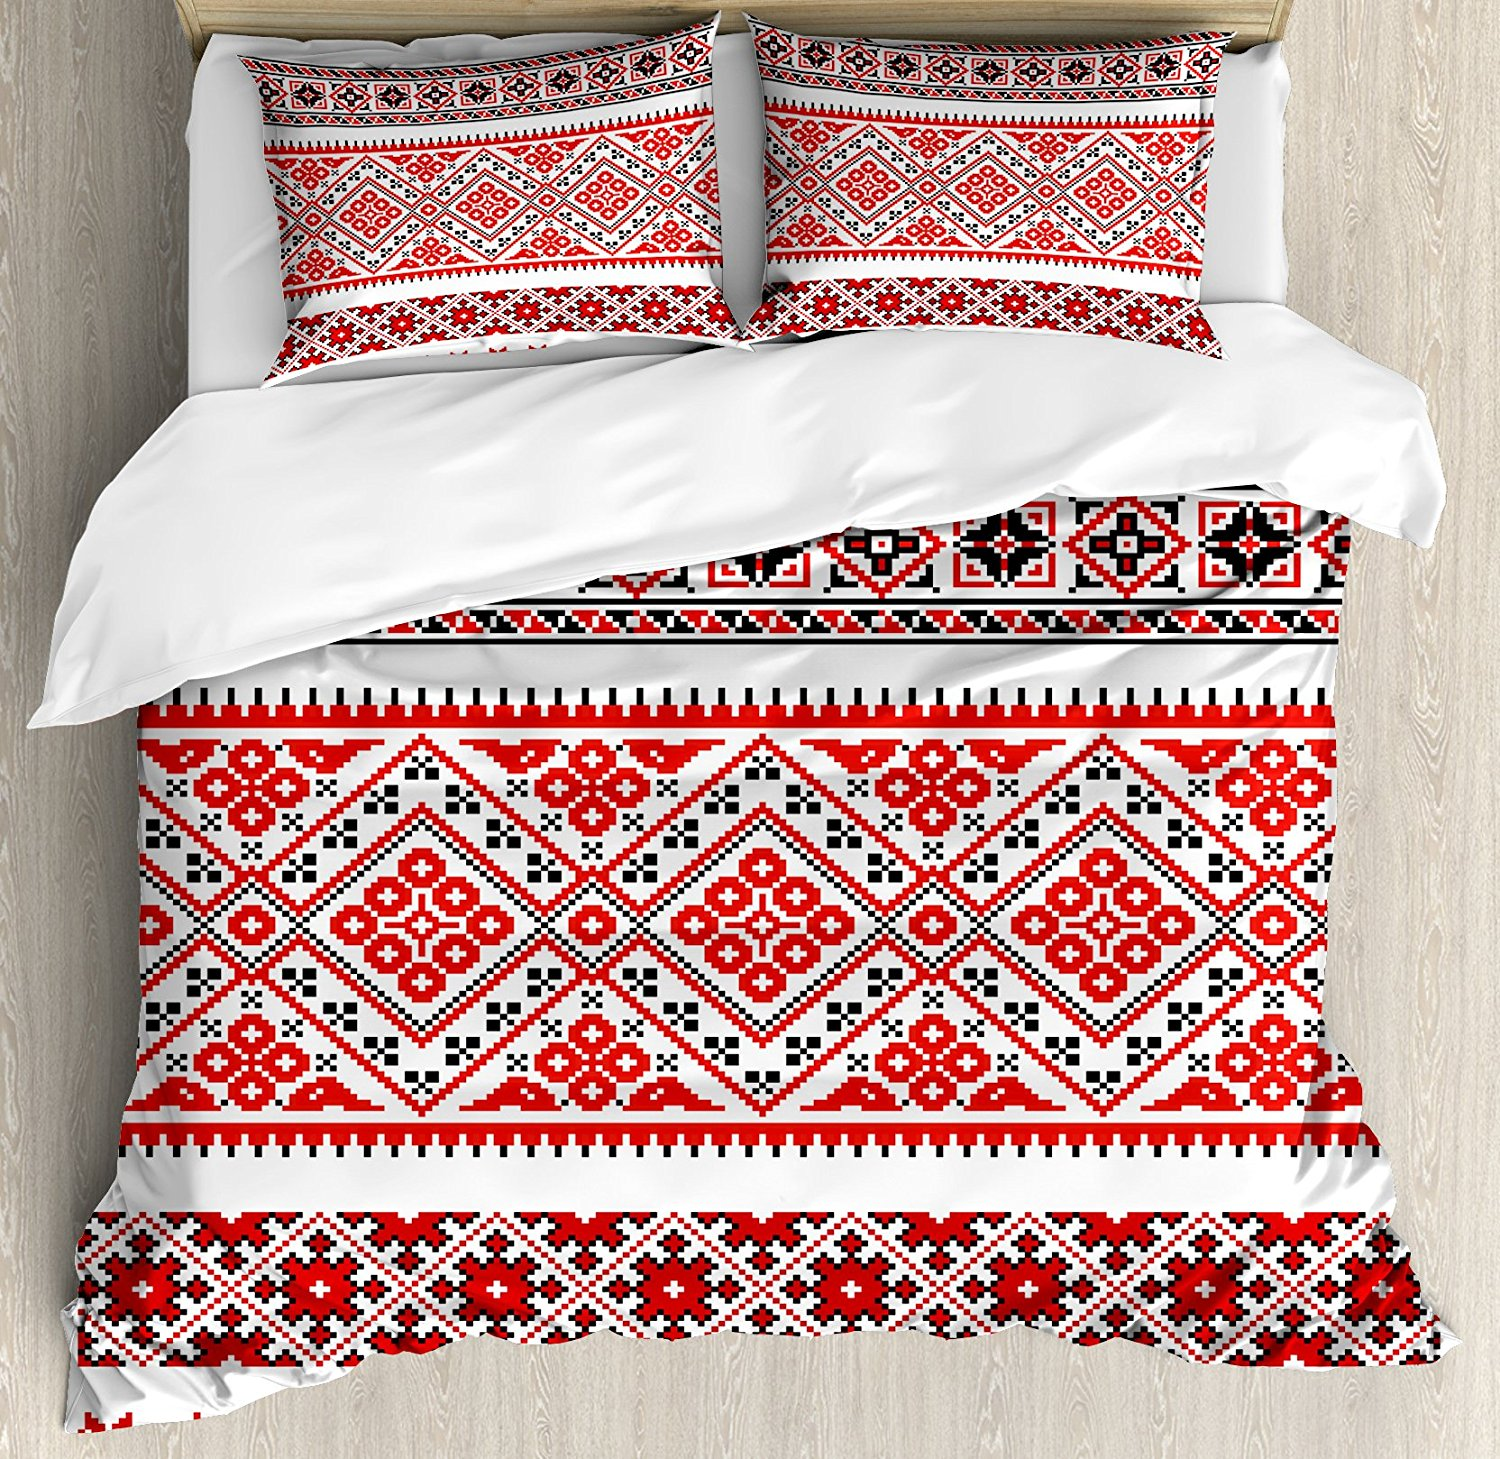 Art Duvet Cover Set Traditional Ukrainian Borders Frames Ornaments Old Fashioned Cultural Motifs, Decorative 4 Piece Bedding Set  jacquard bedding set 7 pieces | Northern Nights Jacquard Reversible 6 or 7 Piece Comforter Set on QVC Art Duvet Cover font b Set b font Traditional Ukrainian Borders Frames Ornaments Old Fashioned Cultural